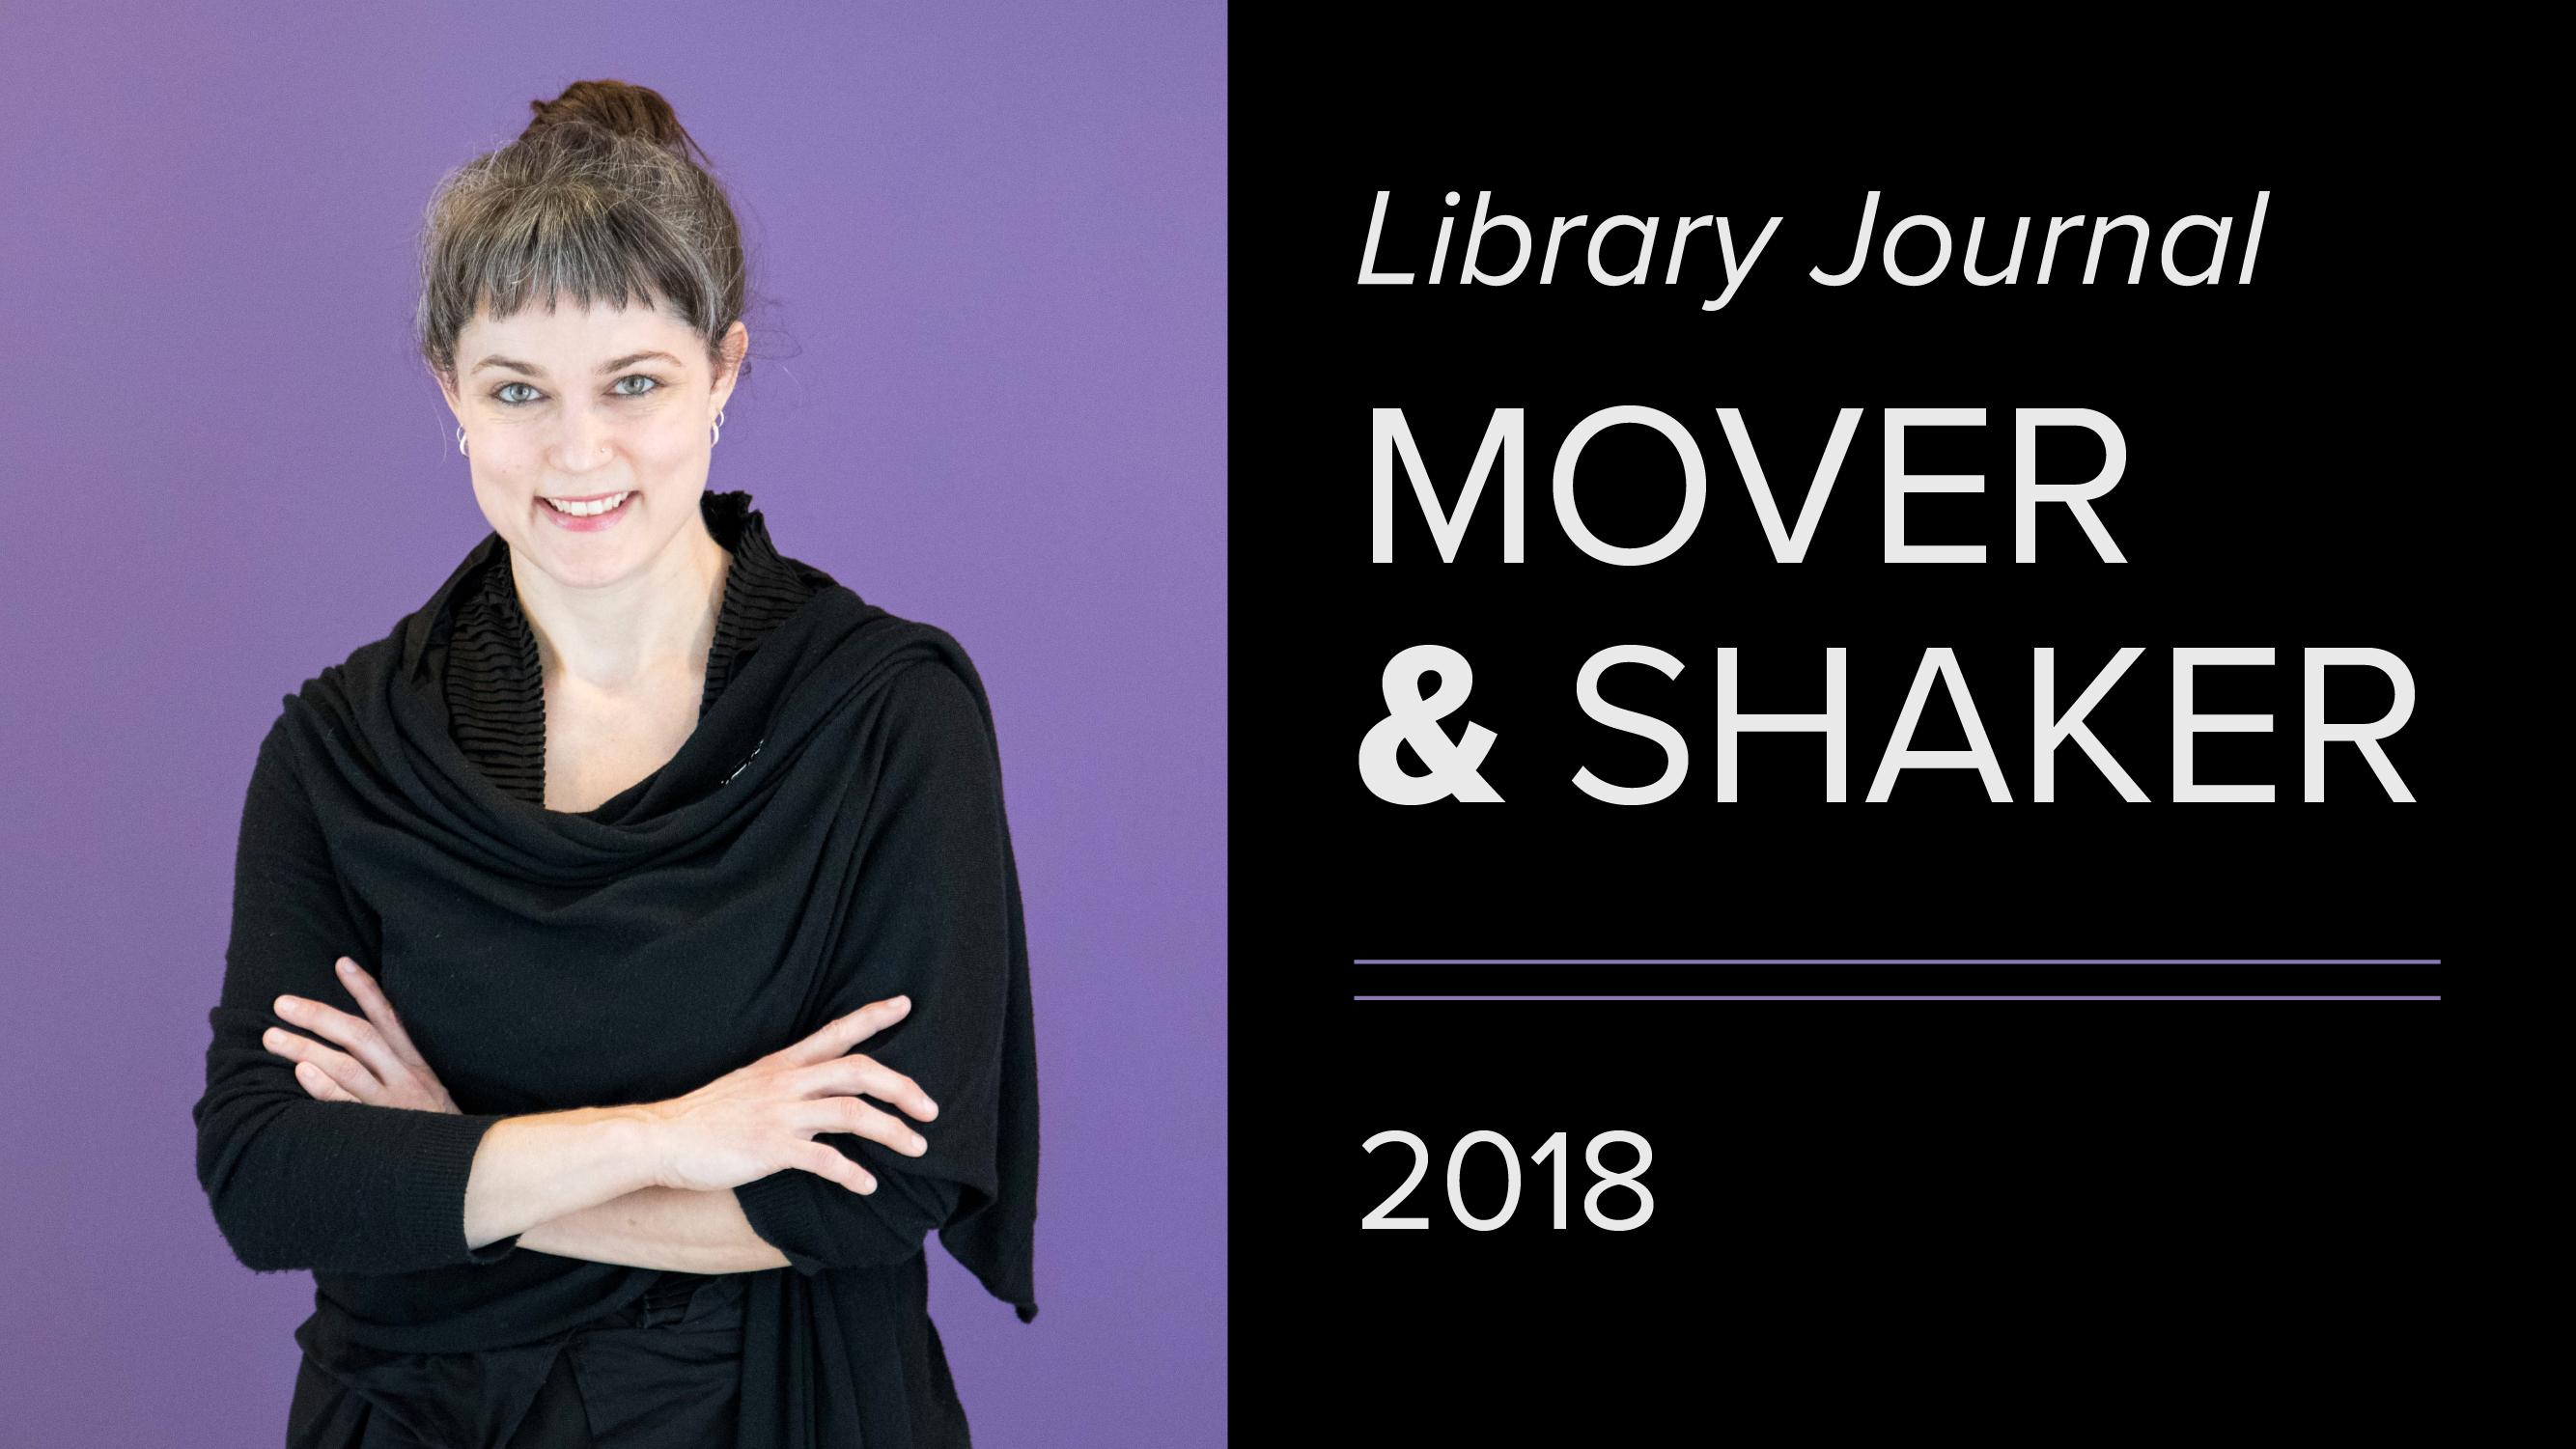 Kristina Spurgin is Library Journal Mover and Shaker 2018